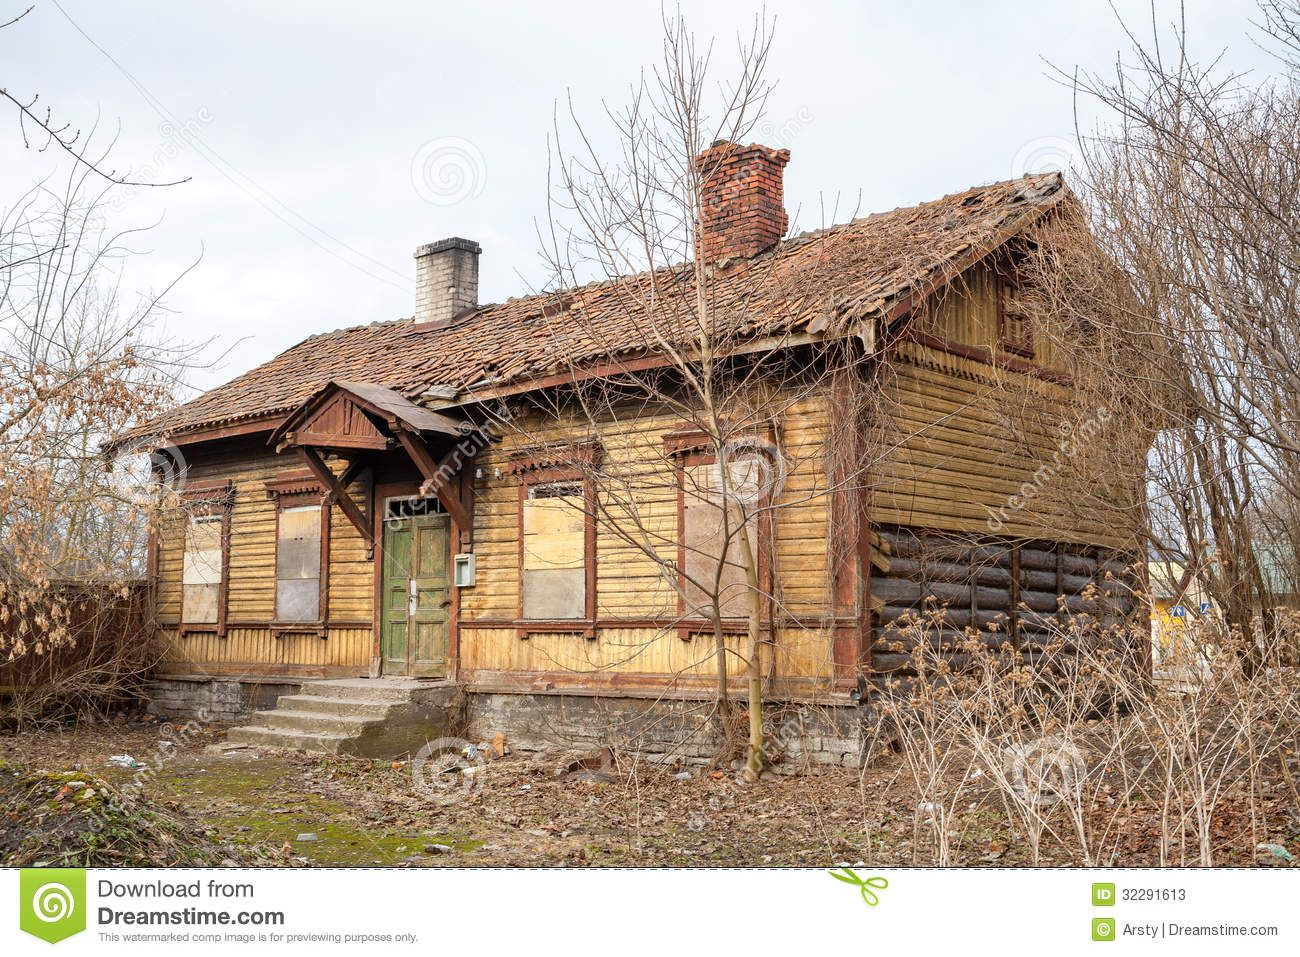 old abandoned houses in idaho - Bing Images